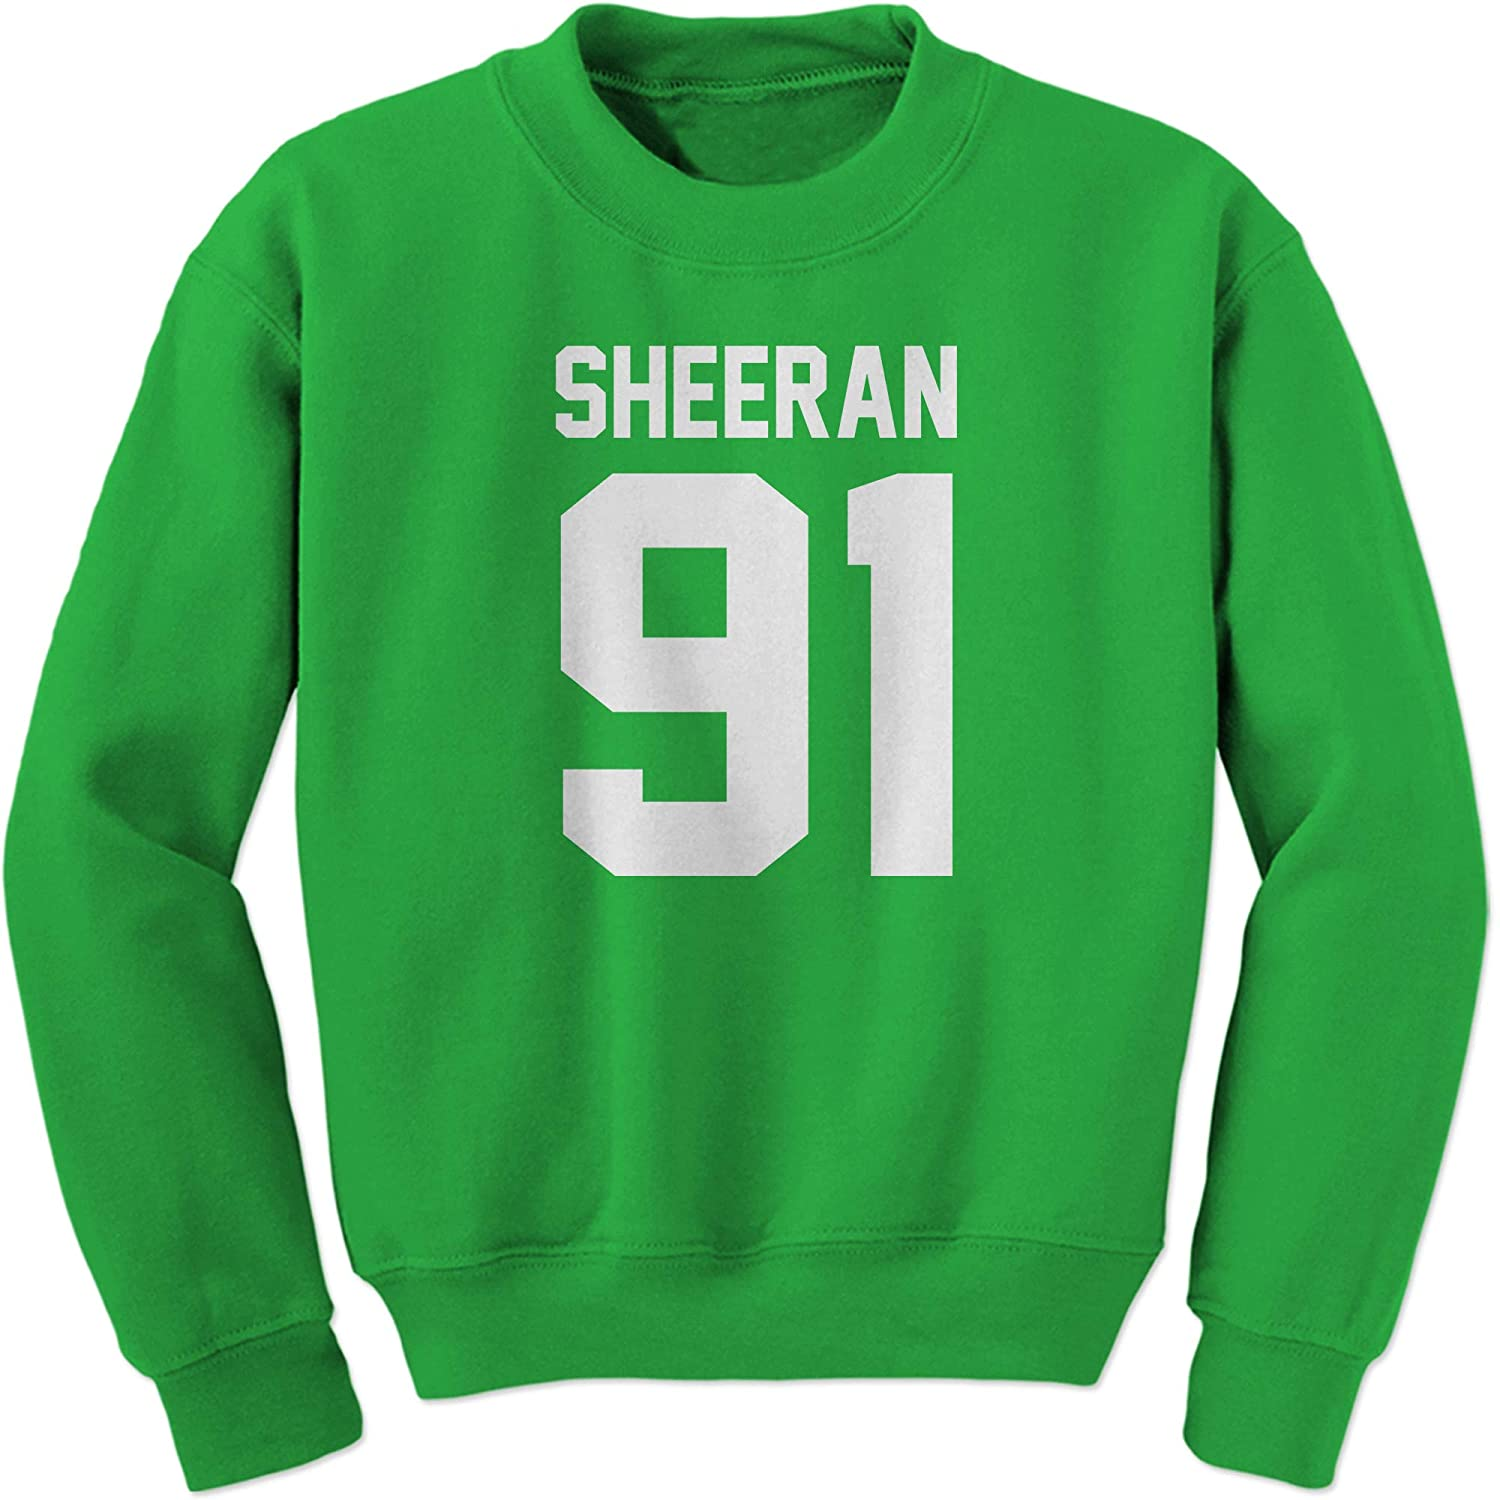 FerociTees Sheeran 91 Jersey Style Birthday Year Crewneck Sweatshirt 3277-C